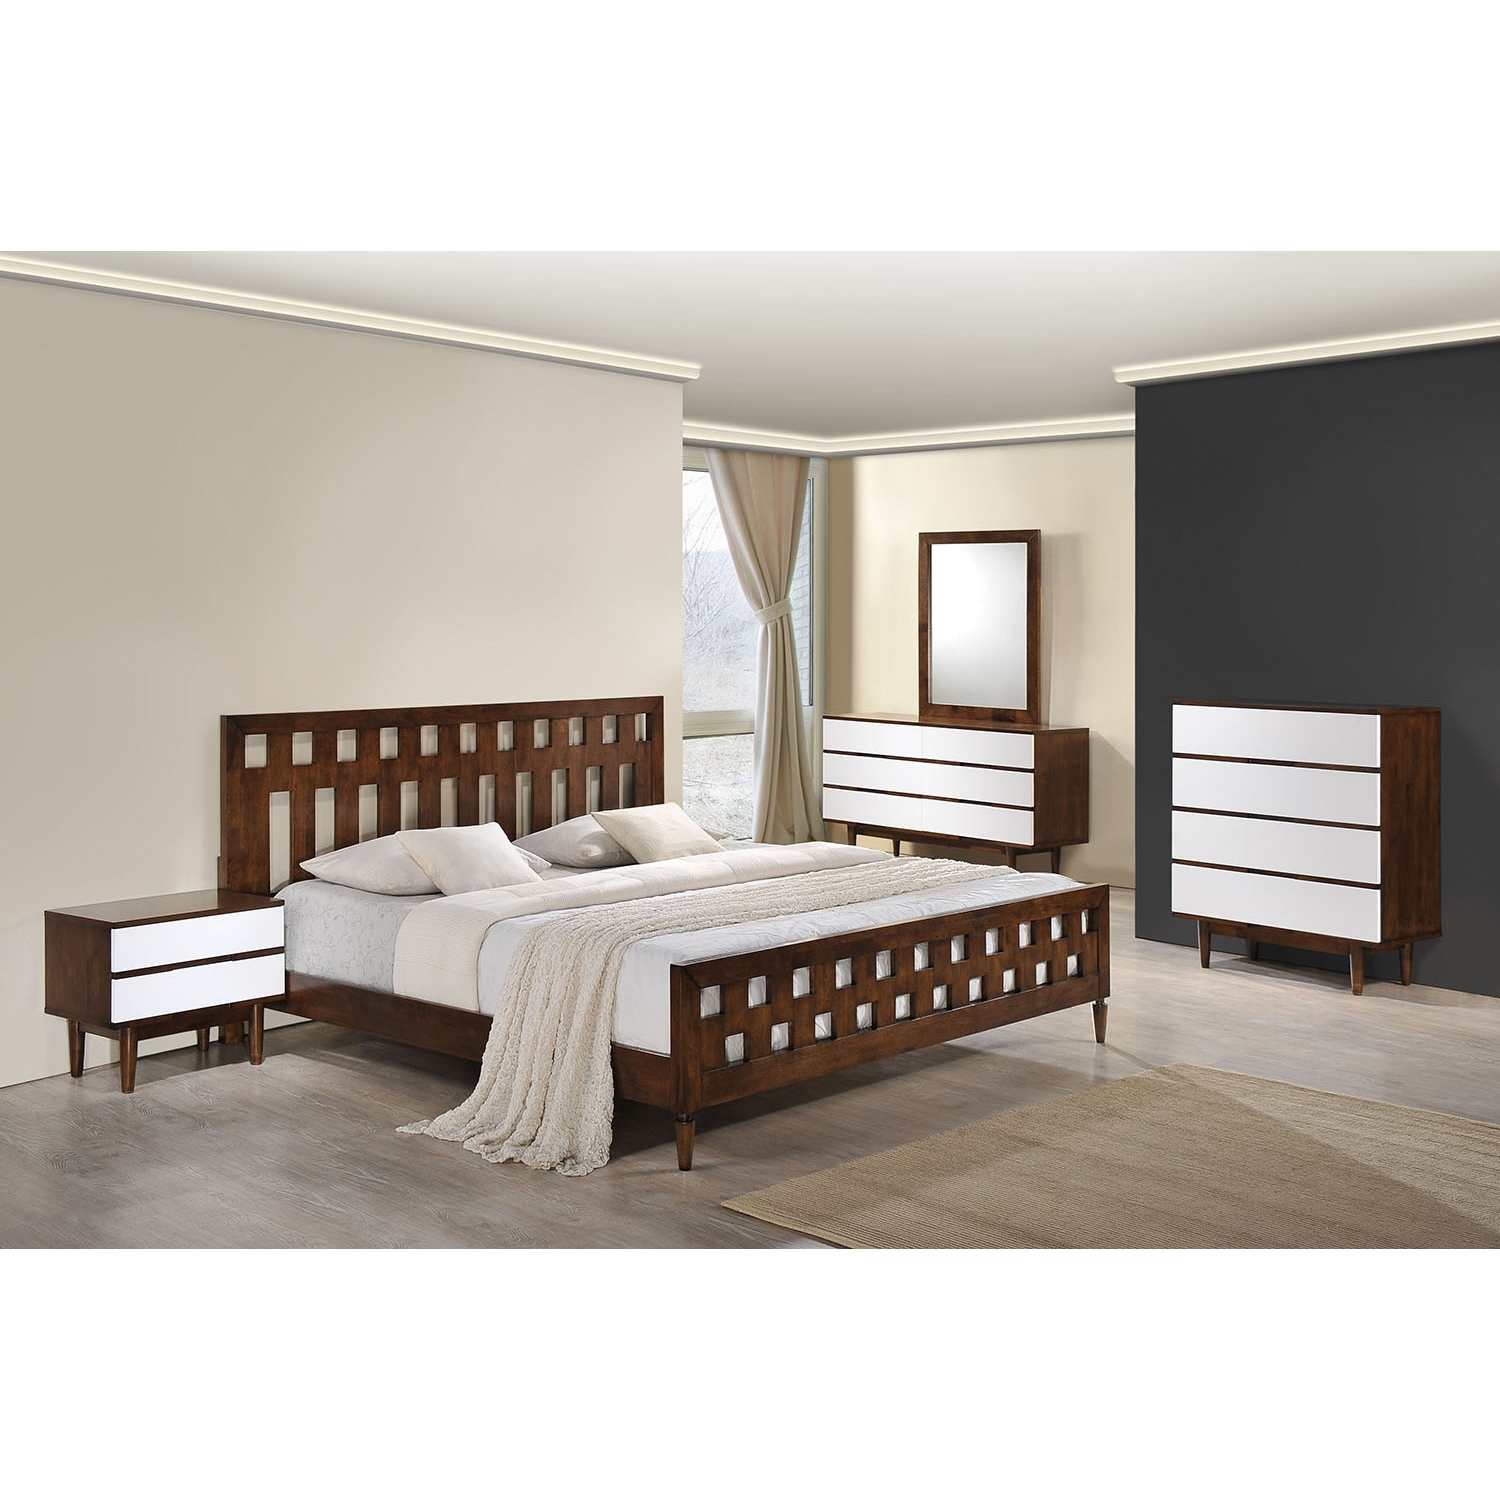 LA Walnut Bedroom Set - ZM-80030-BED-SET